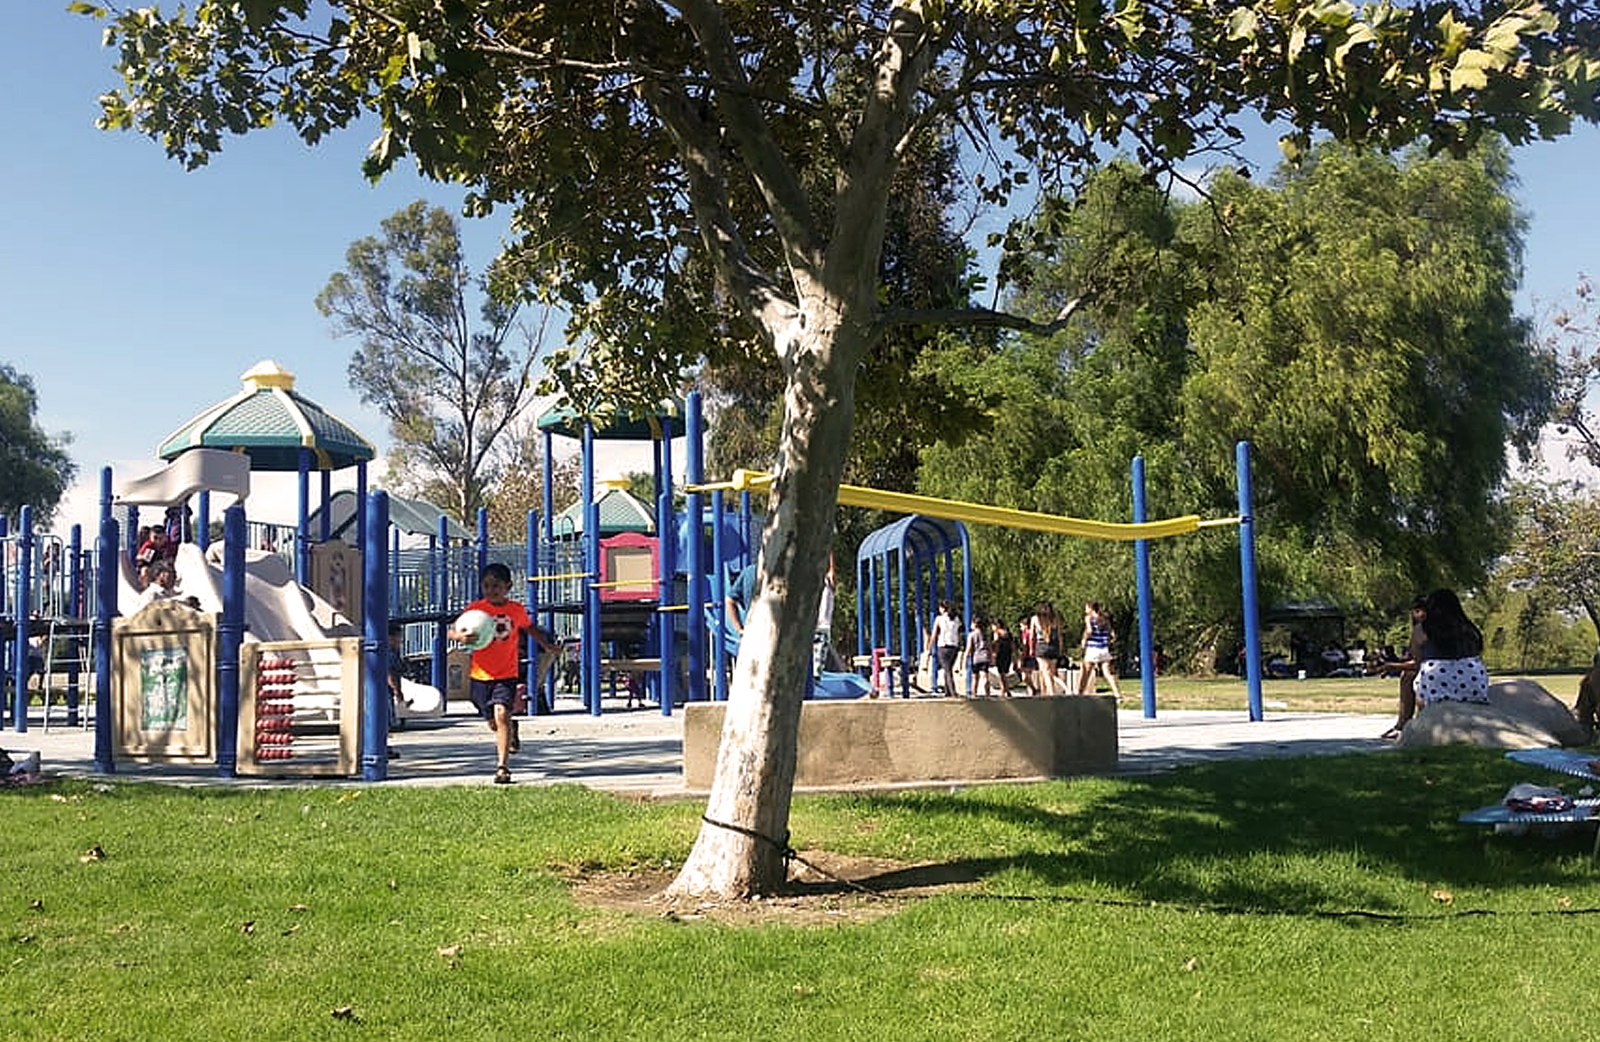 Children playing at Prado park playground.